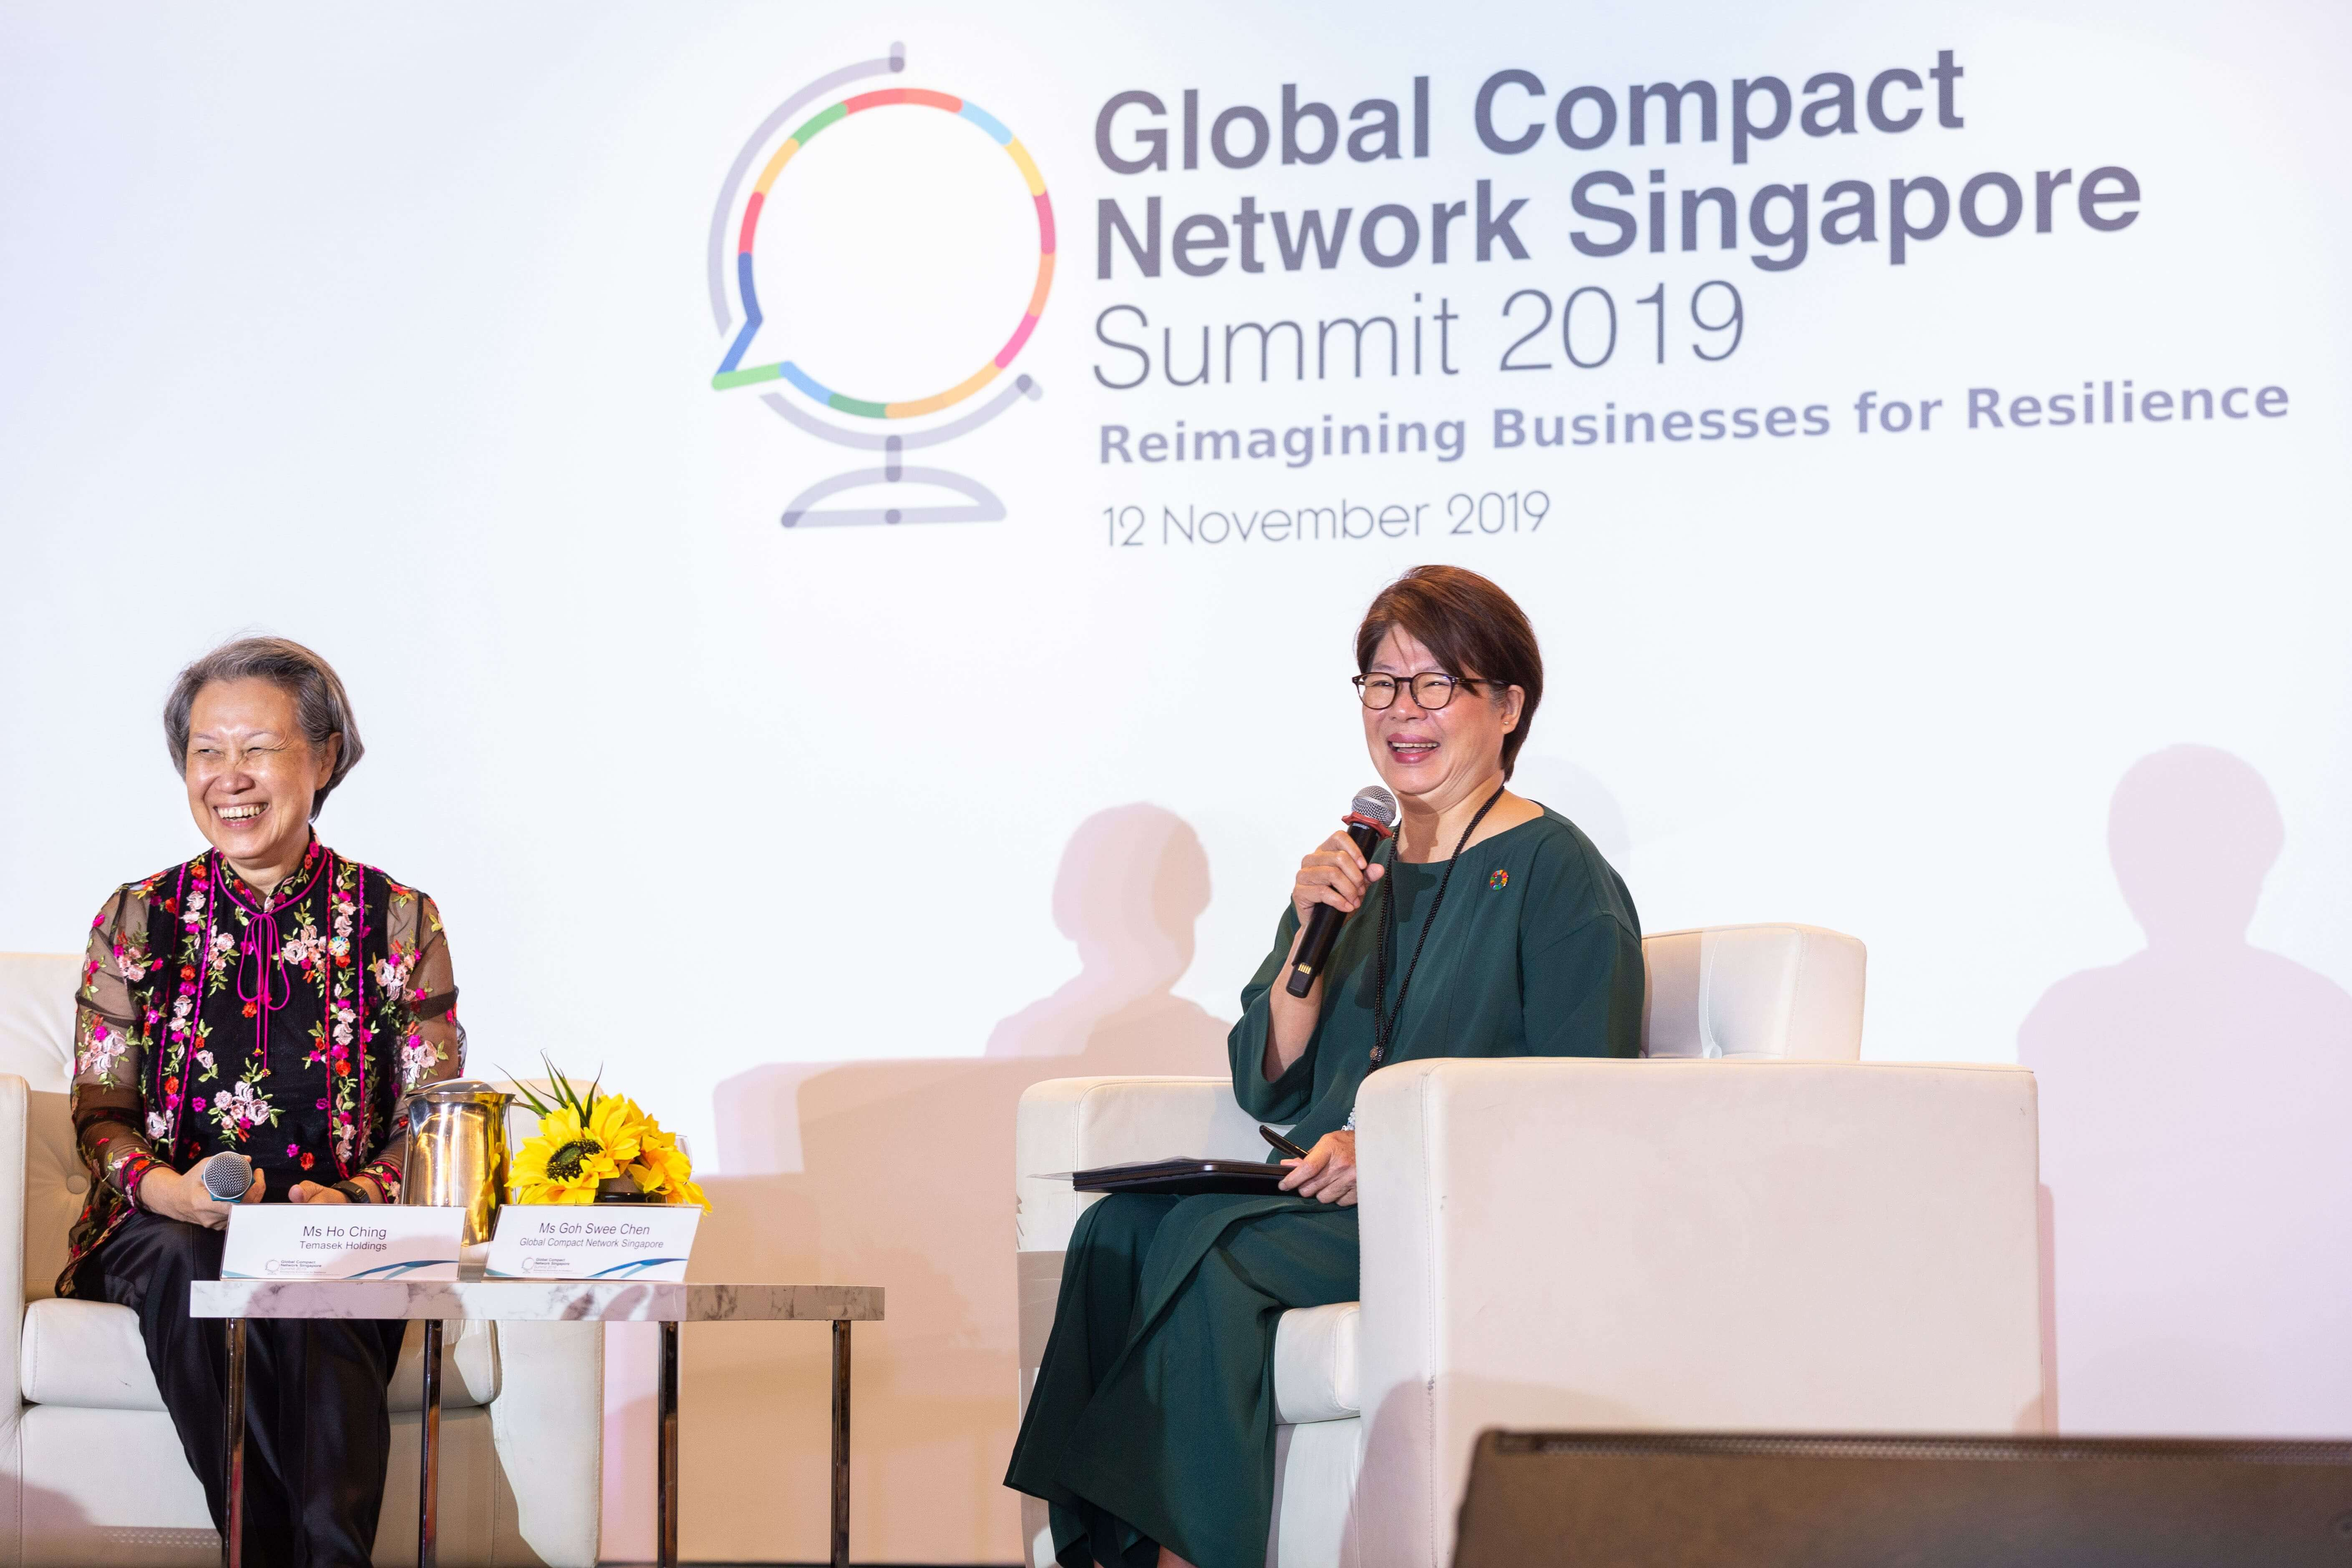 Ms Ho Ching & Ms Goh Swee Chen